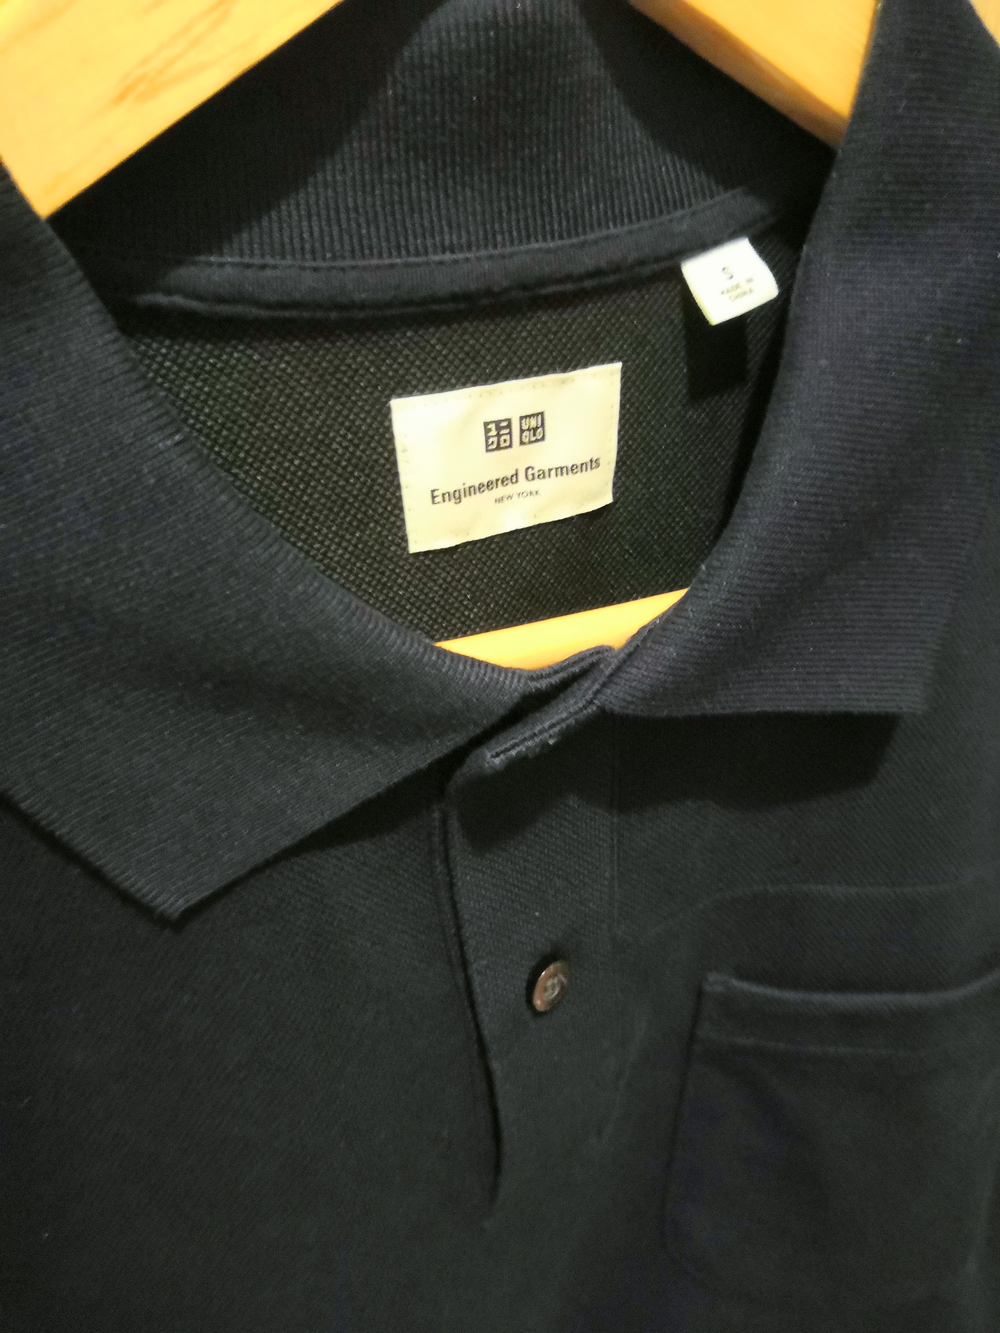 Black-Midnight Blue Cotton / Poly Mix Engineered Garments × Uniqlo Polo Shirt Minimalist Detail